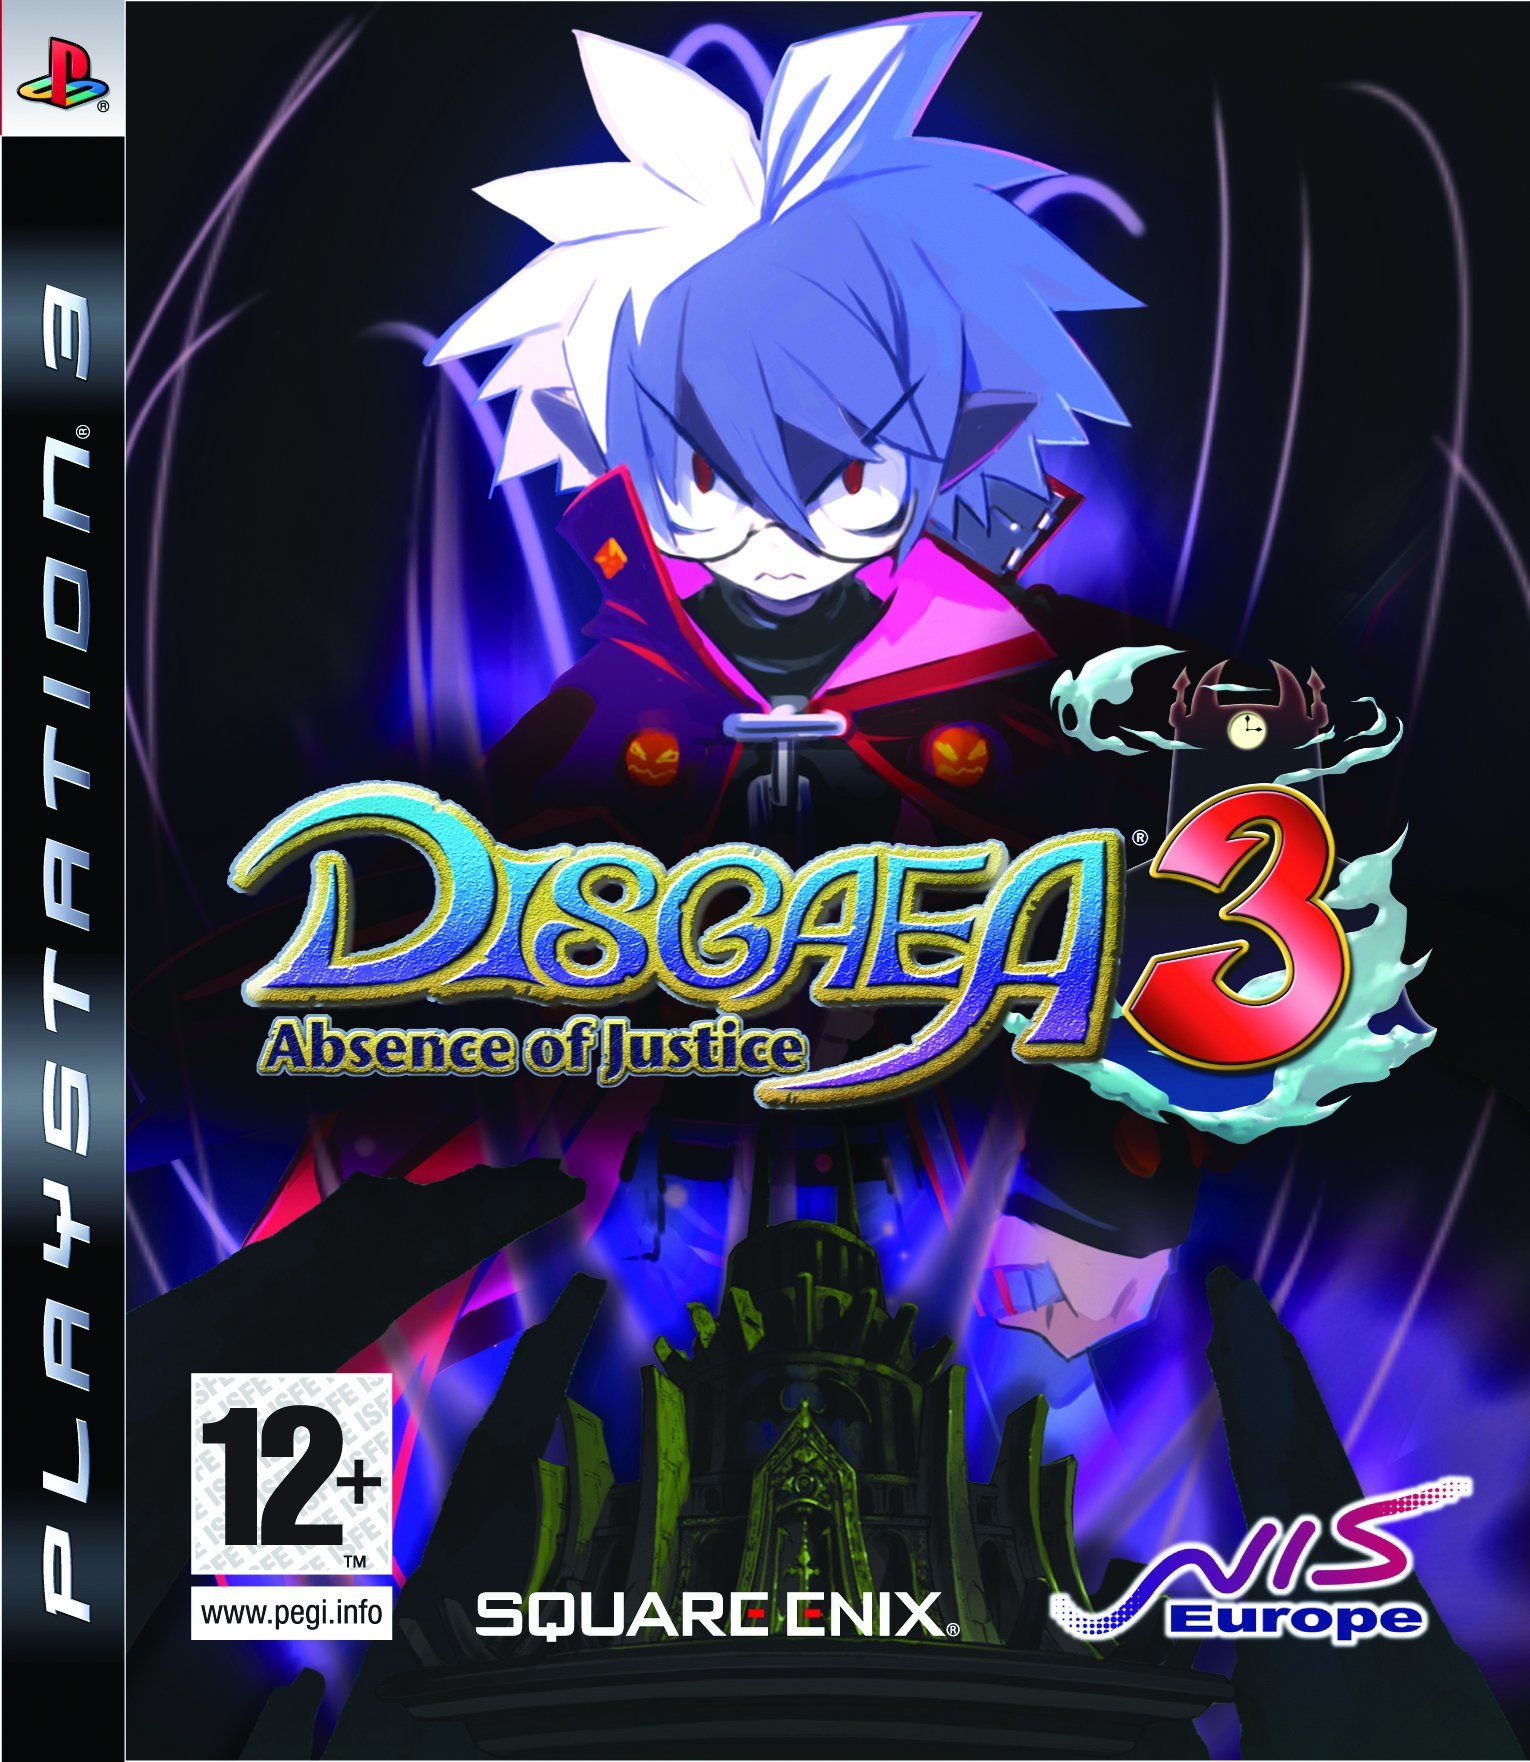 Disgaea 3 Absence of Justice (PS3) Disgaea, Playstation